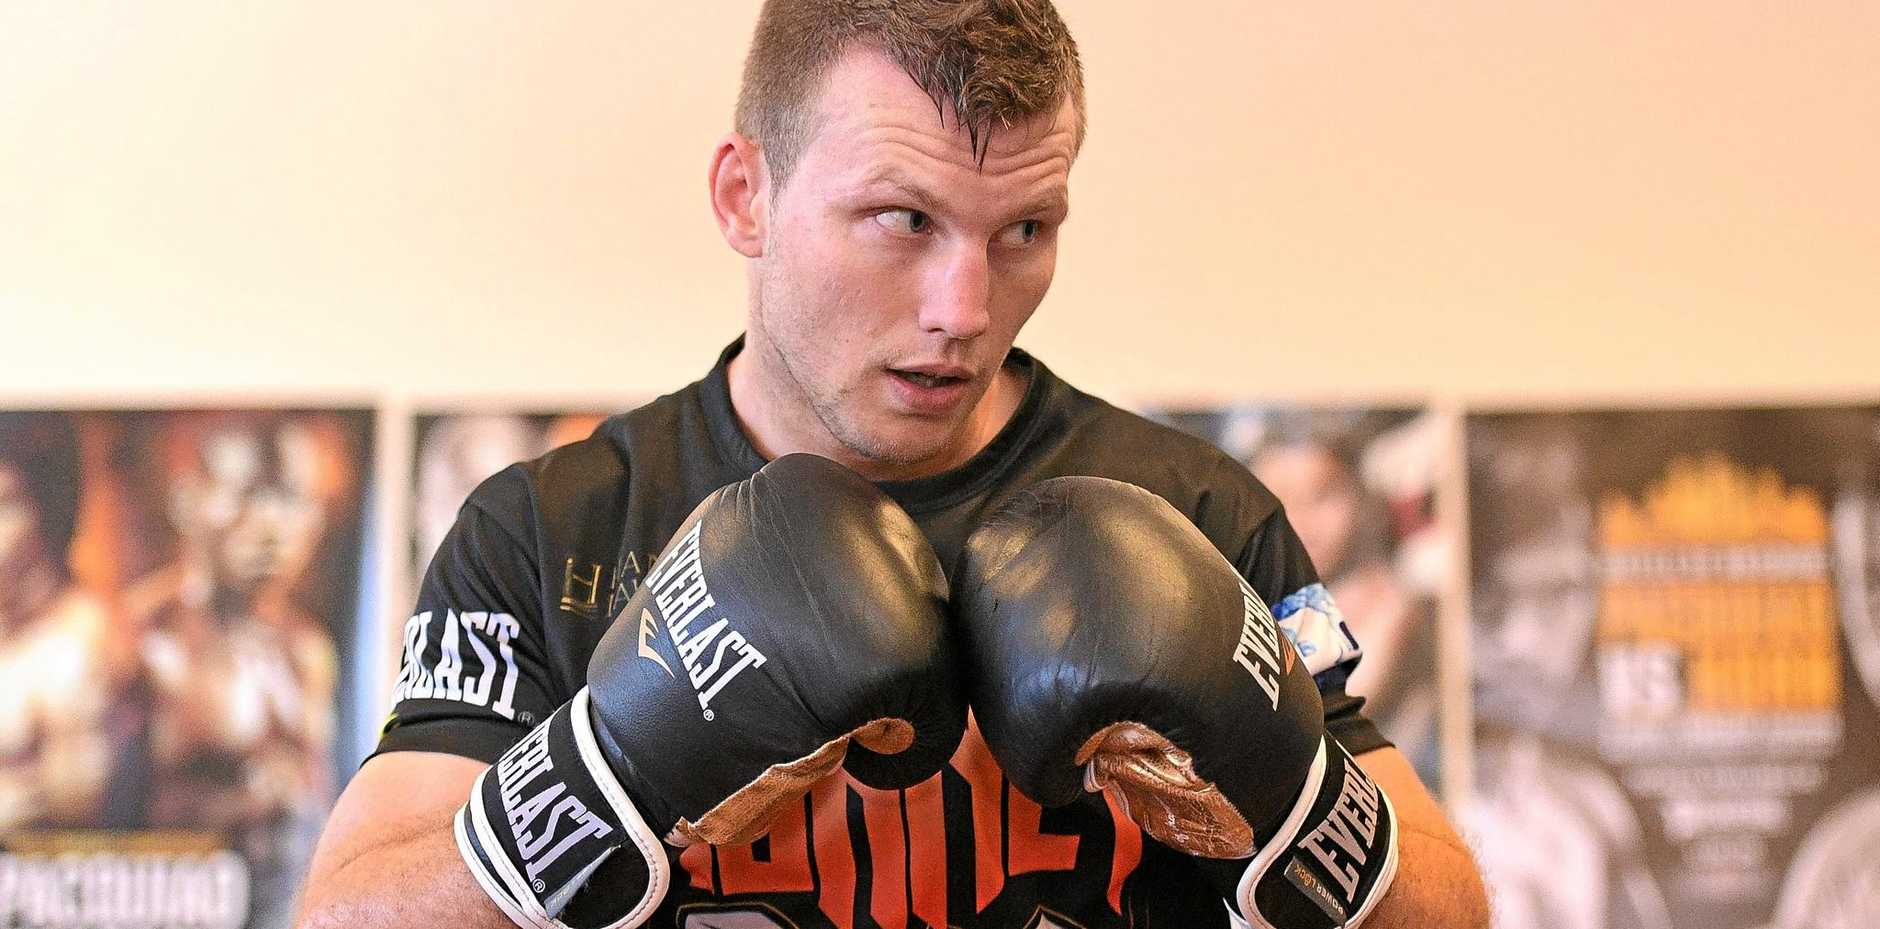 Jeff Horn during a training session in Brisbane today.